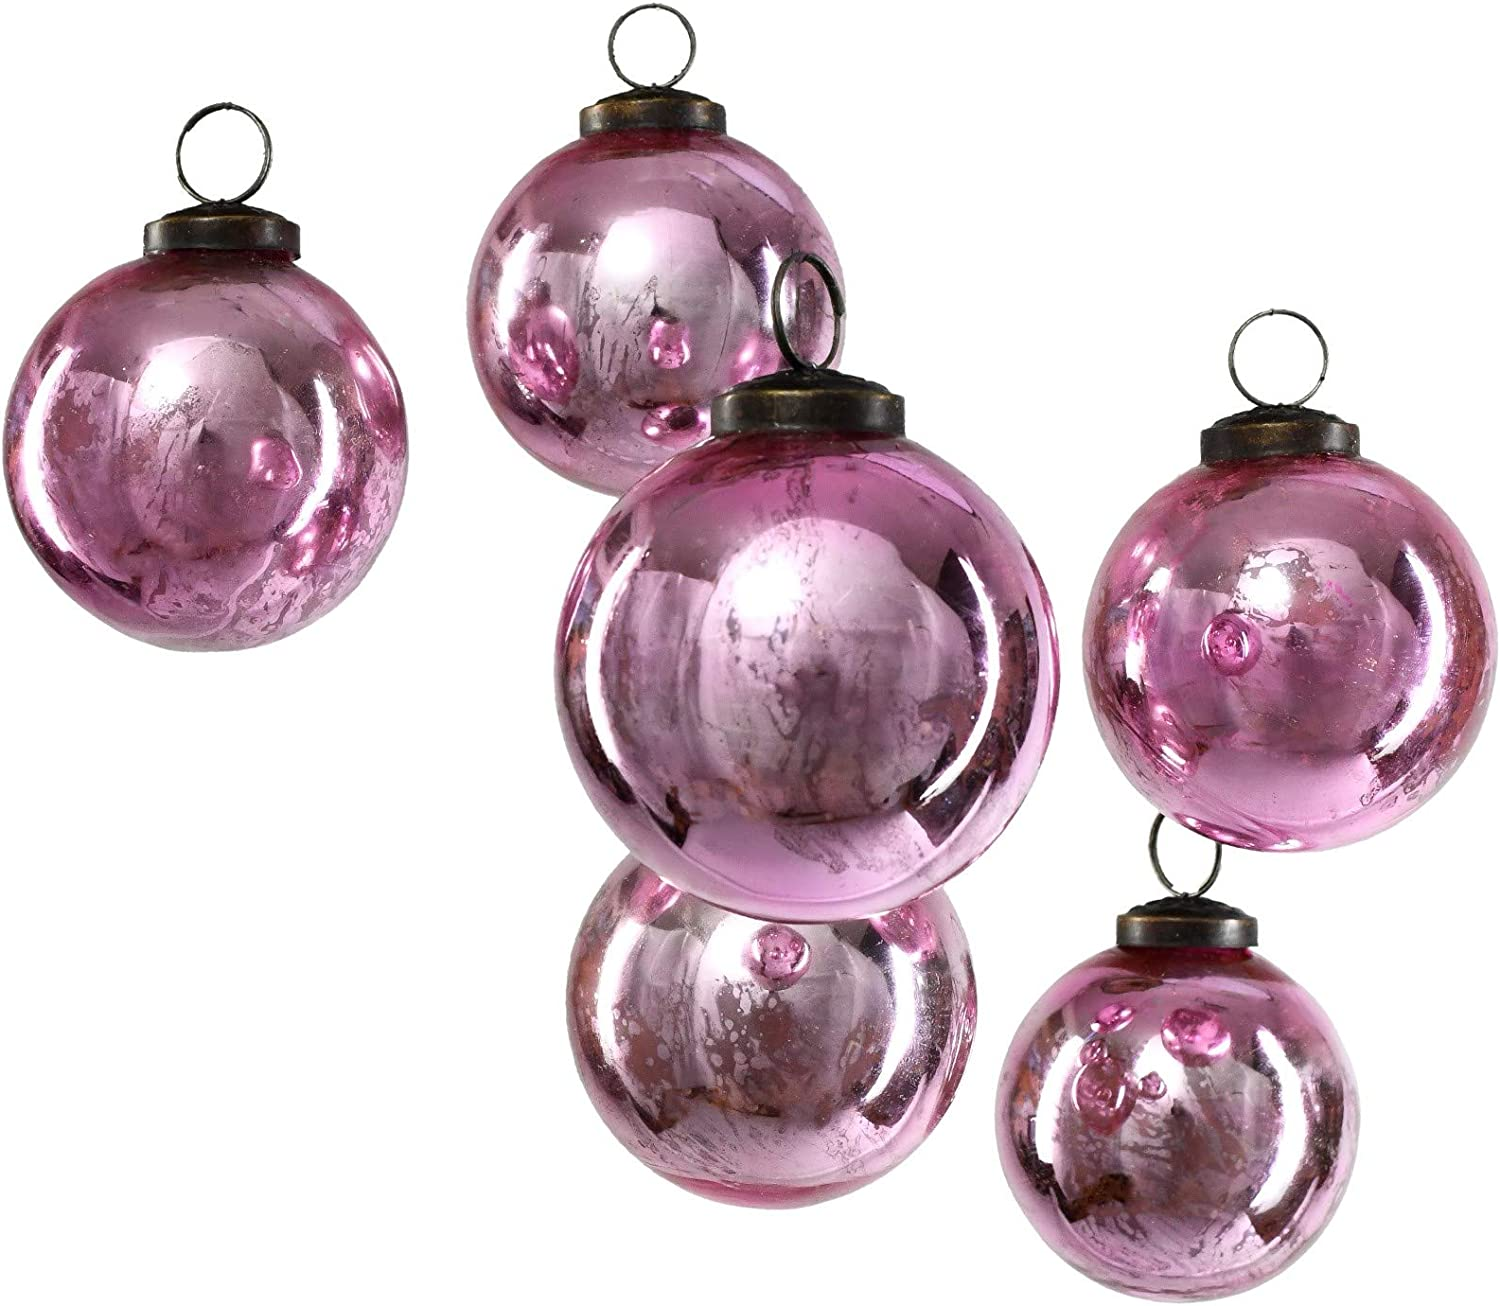 """Serene Spaces Living Set of 6 Decorative Antique Rose Pink Mercury Glass Ball Ornament for Window Box, Ornaments for Holiday Décor, Measure 4"""" Tall and 3"""" Diameter"""